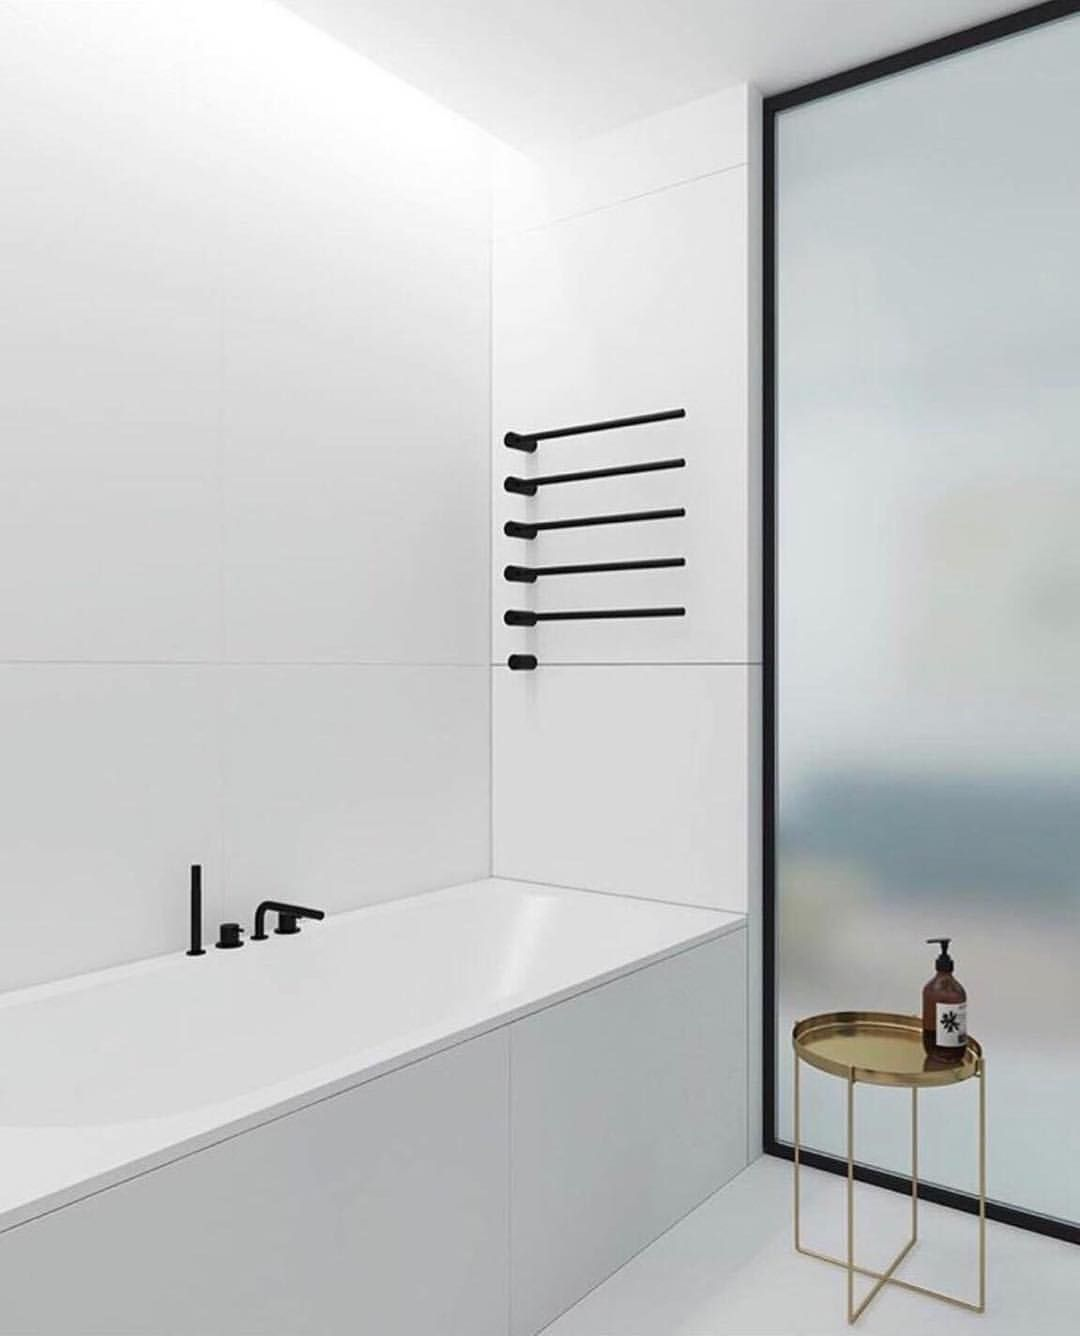 Minimalist Bathroom Vola Heated Towel Rail Image Via